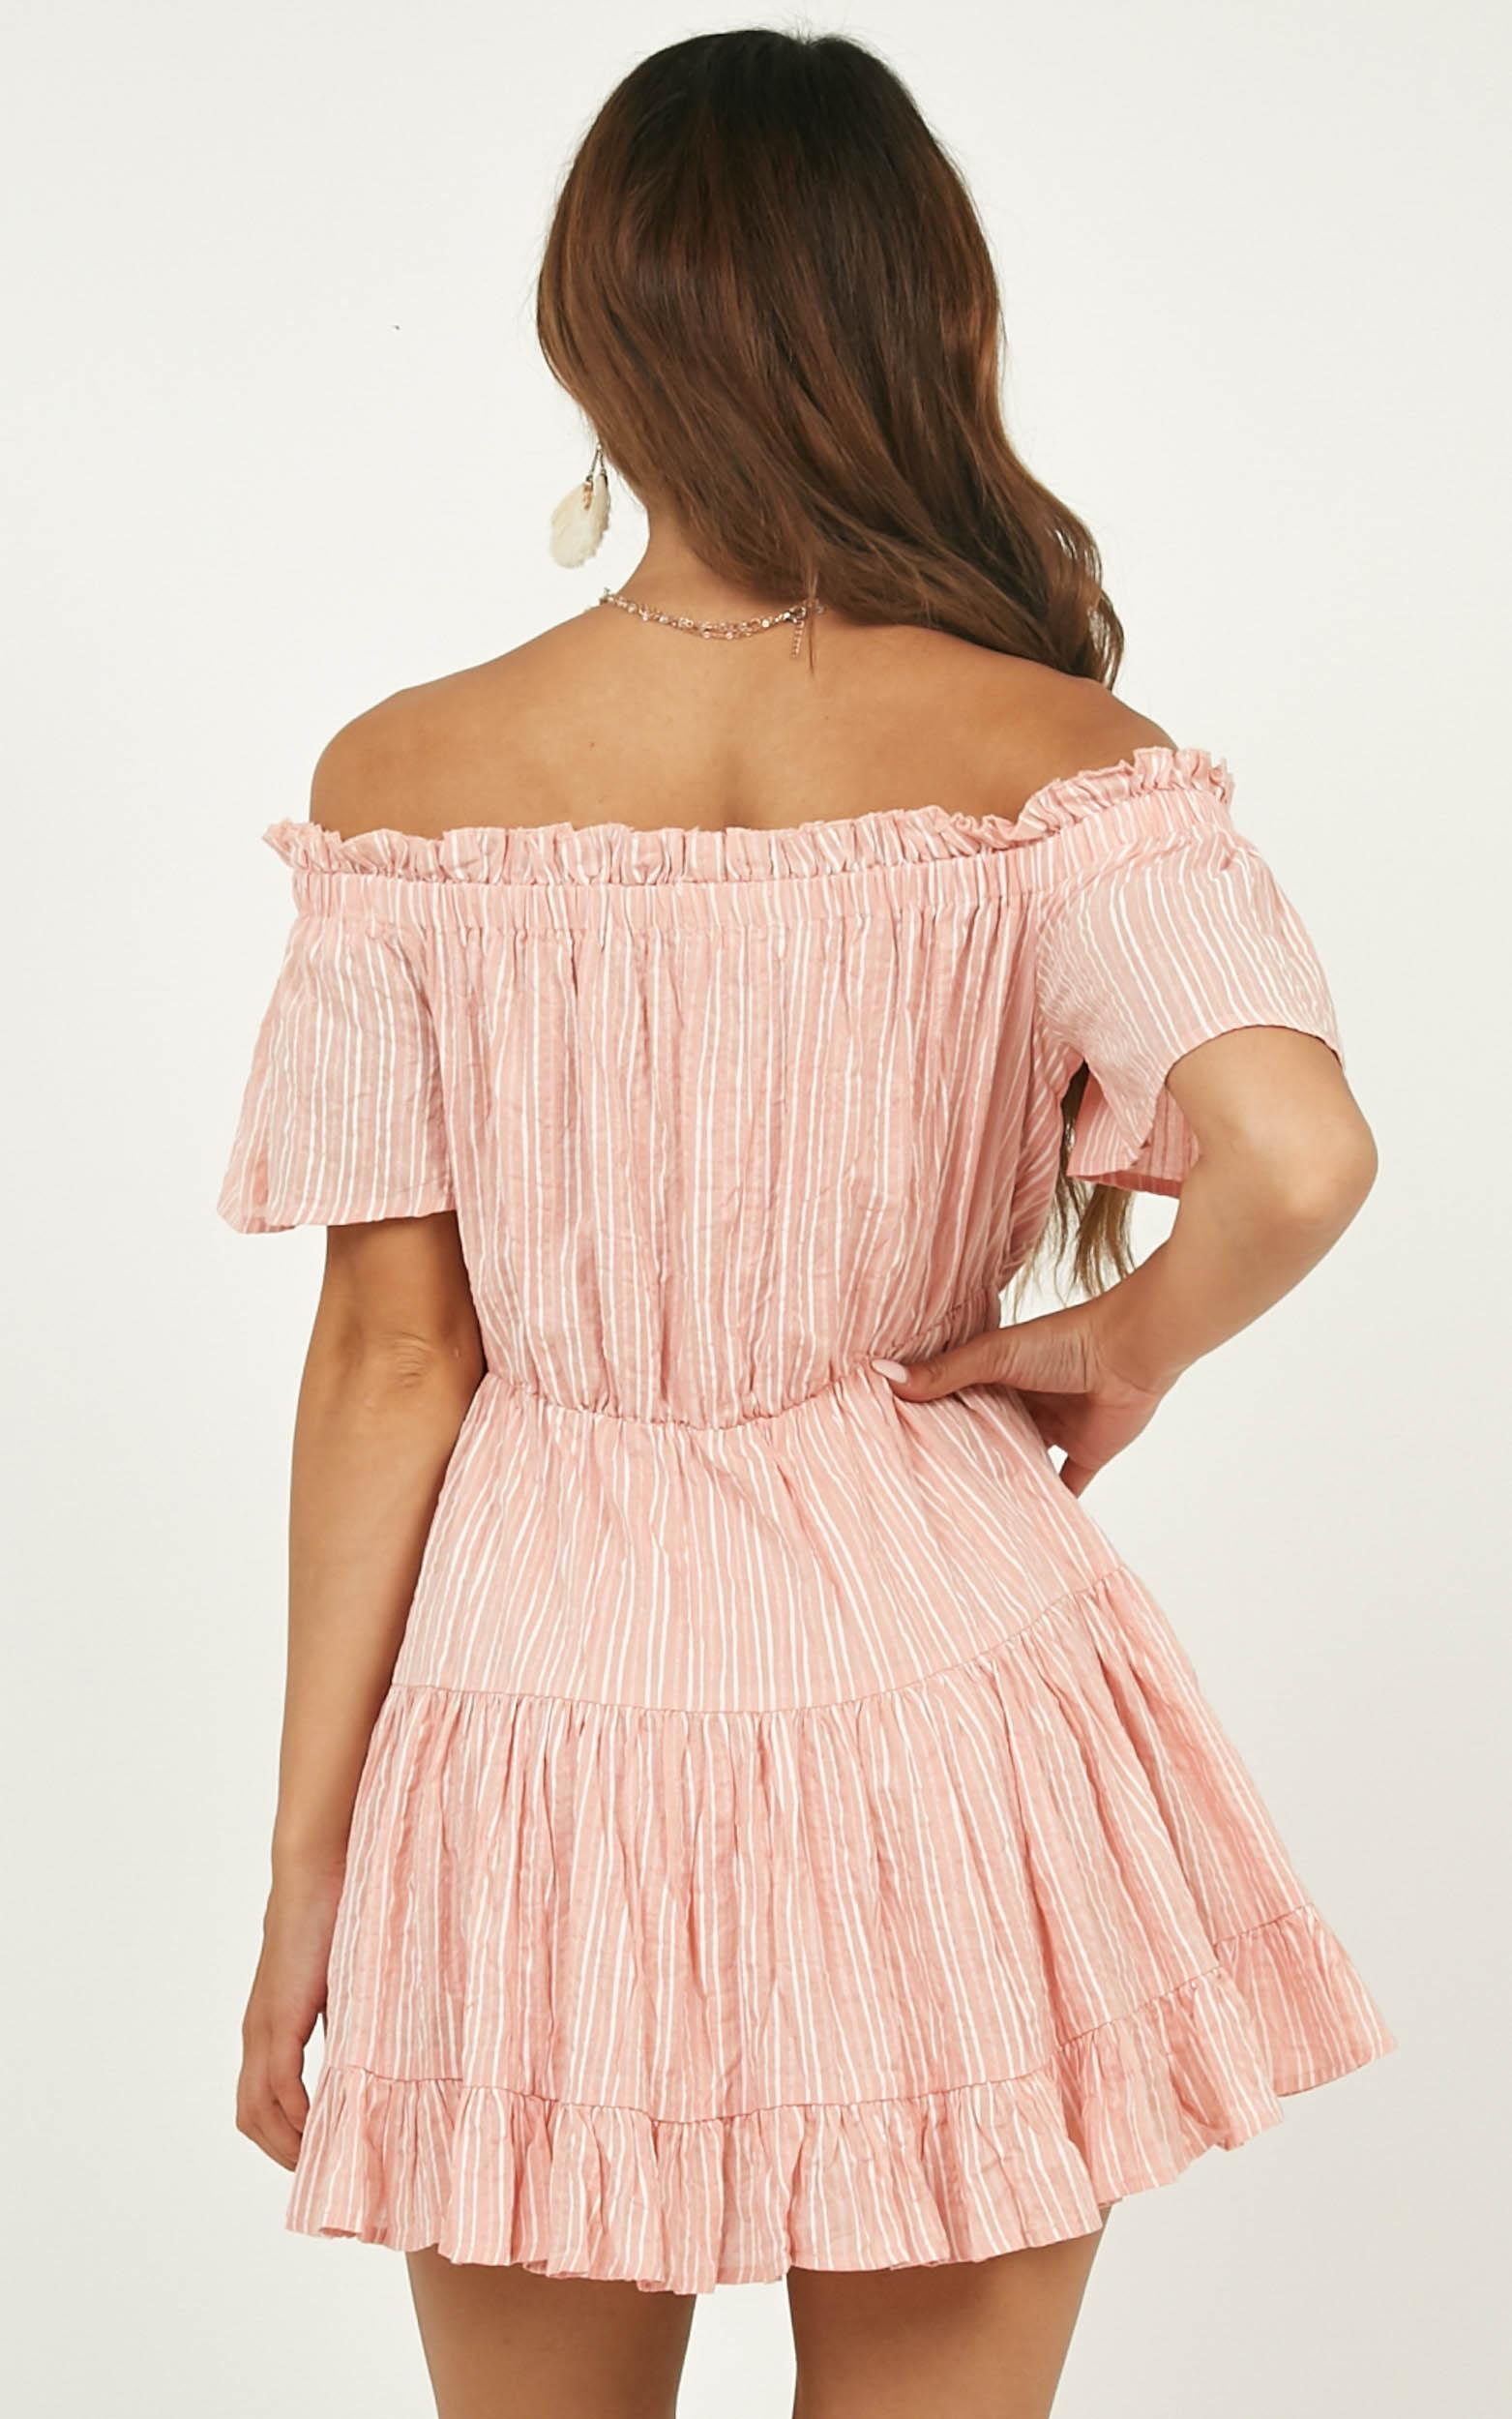 Wish Me Lucky Dress In Blush Stripe - 4 (XXS), Blush, hi-res image number null